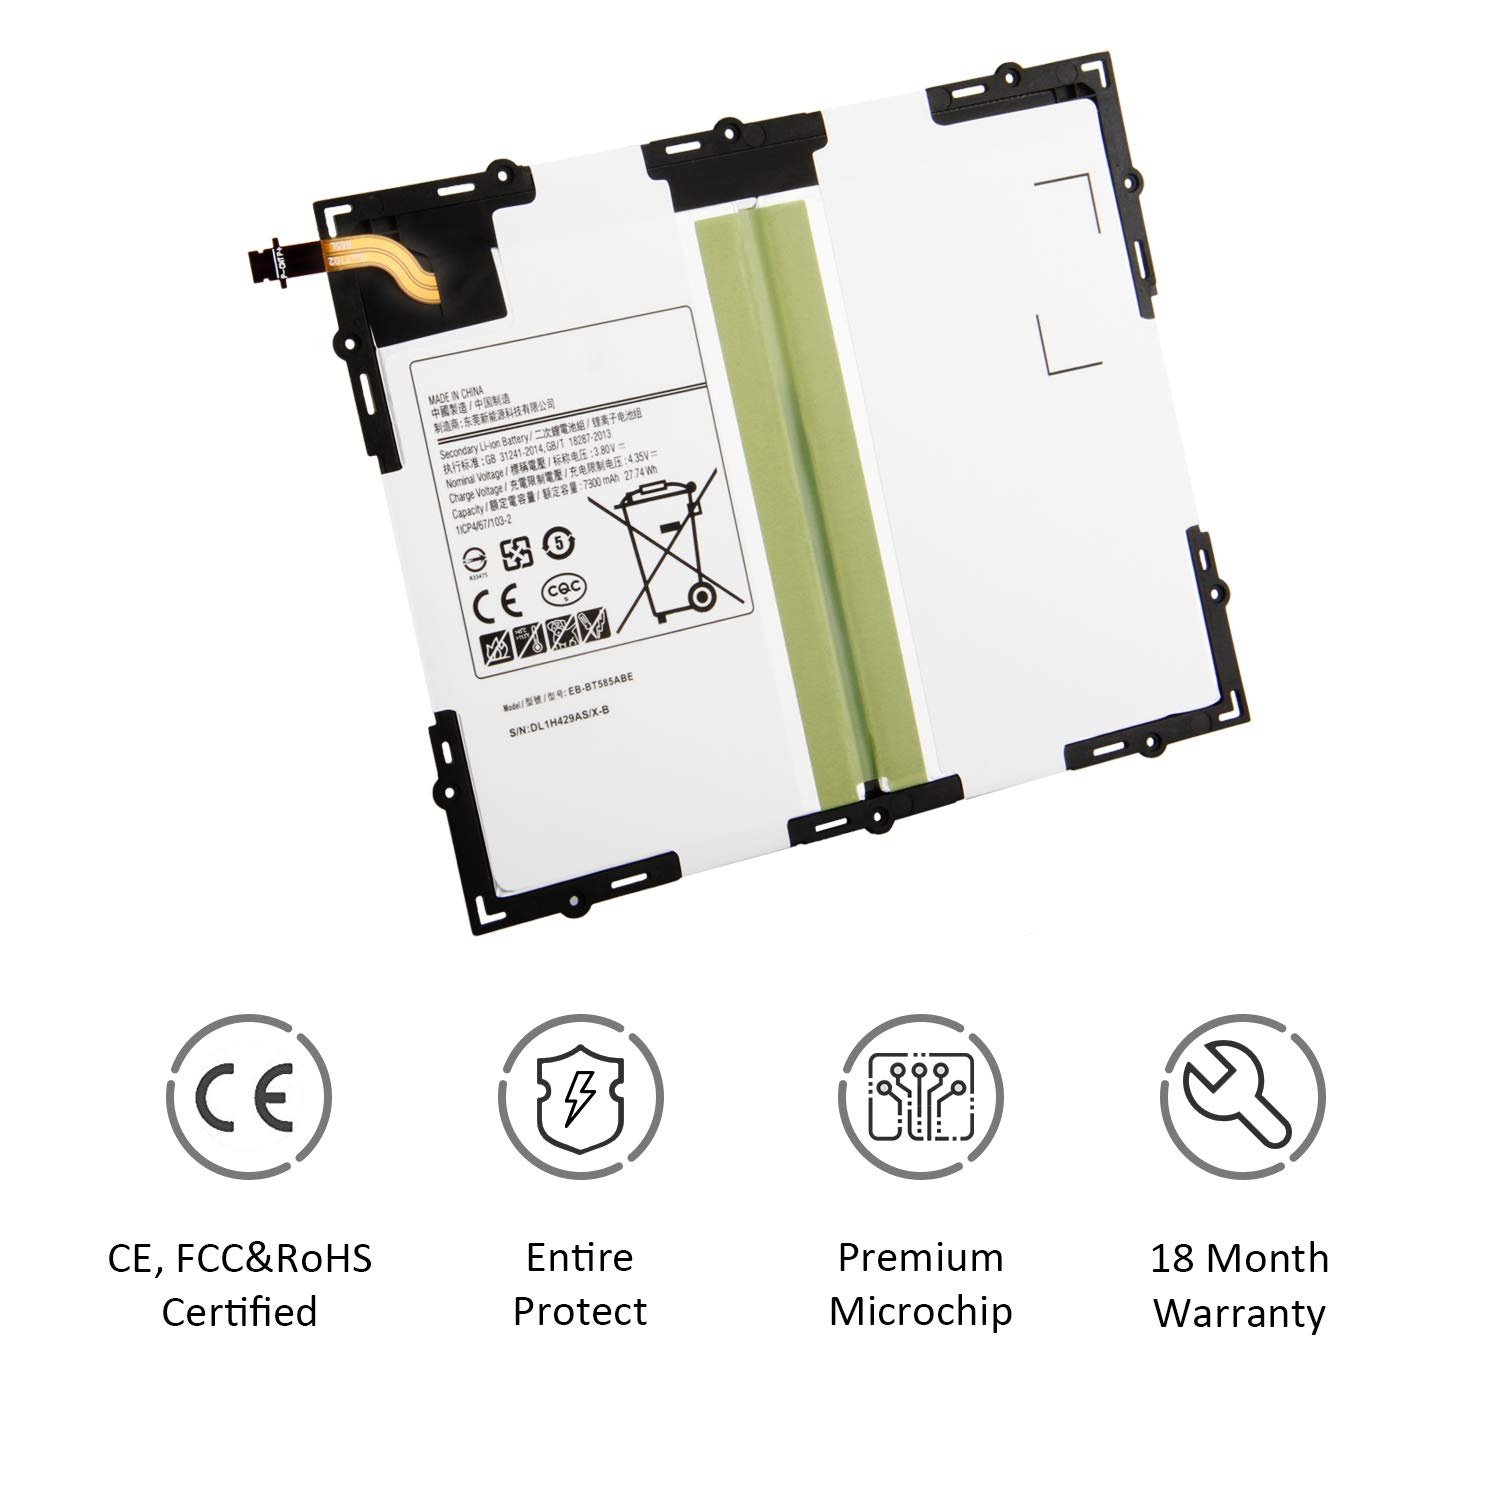 ASKC 7300mAh EB-BT585ABE Laptop Tablet Battery for Samsung Galaxy Tab A 10.1 2016 SM-T580 SM-T585 SM-P580 P585 P585M SM-T585C SM-T587 SM-T587P Series EB-BT585ABA 3.8V 27.74Wh with Tools